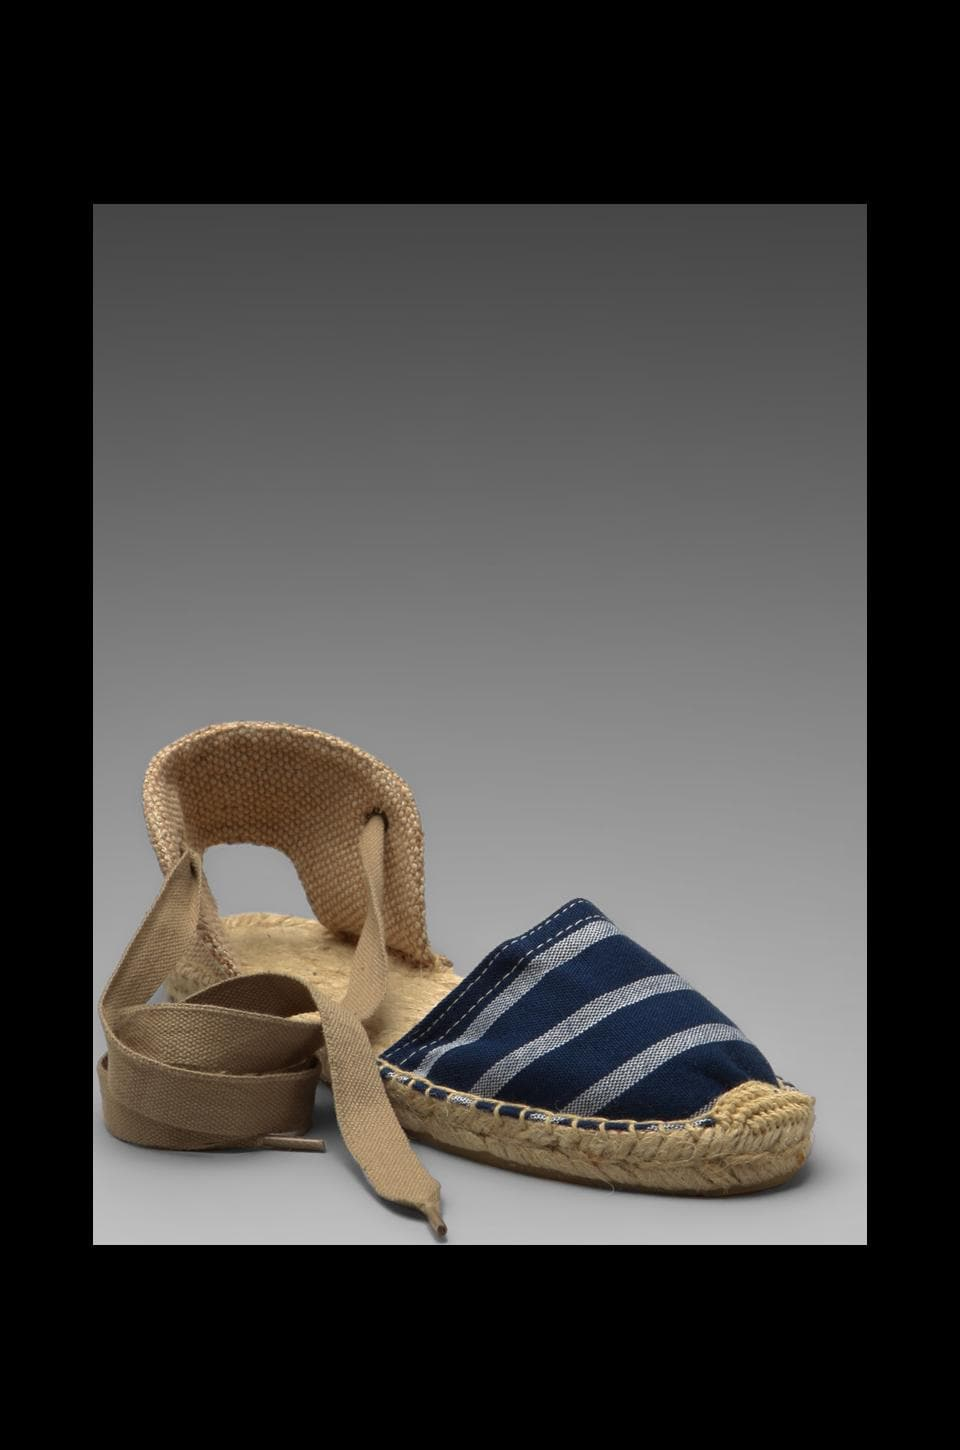 Soludos Stripe Sandal in Navy White Closed